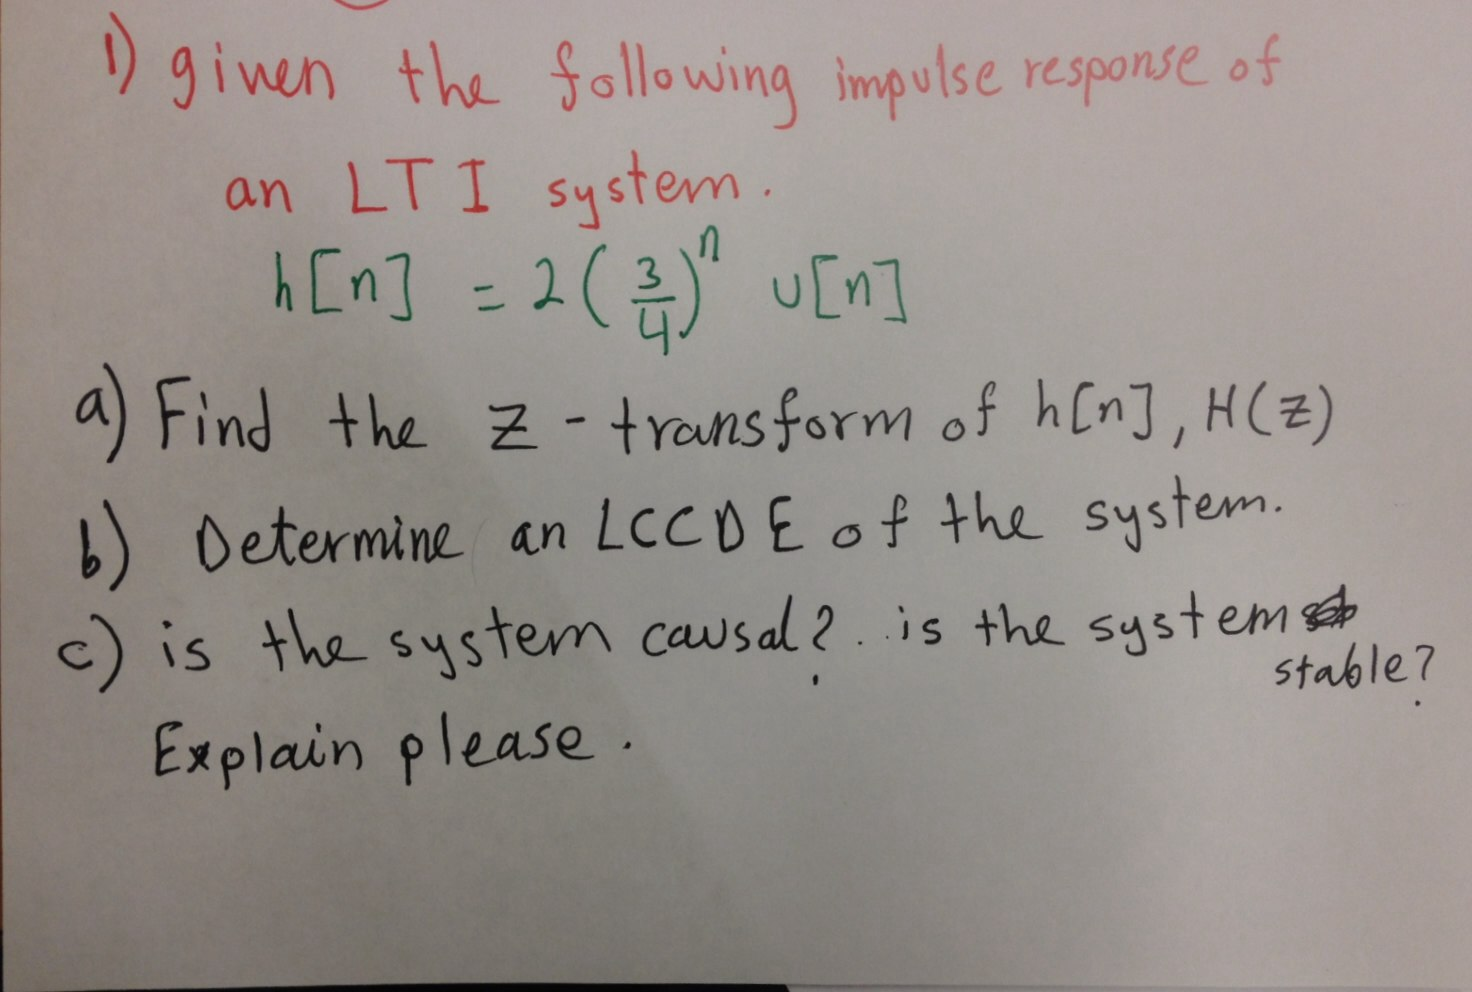 Given the following impulse response of an LTI sys